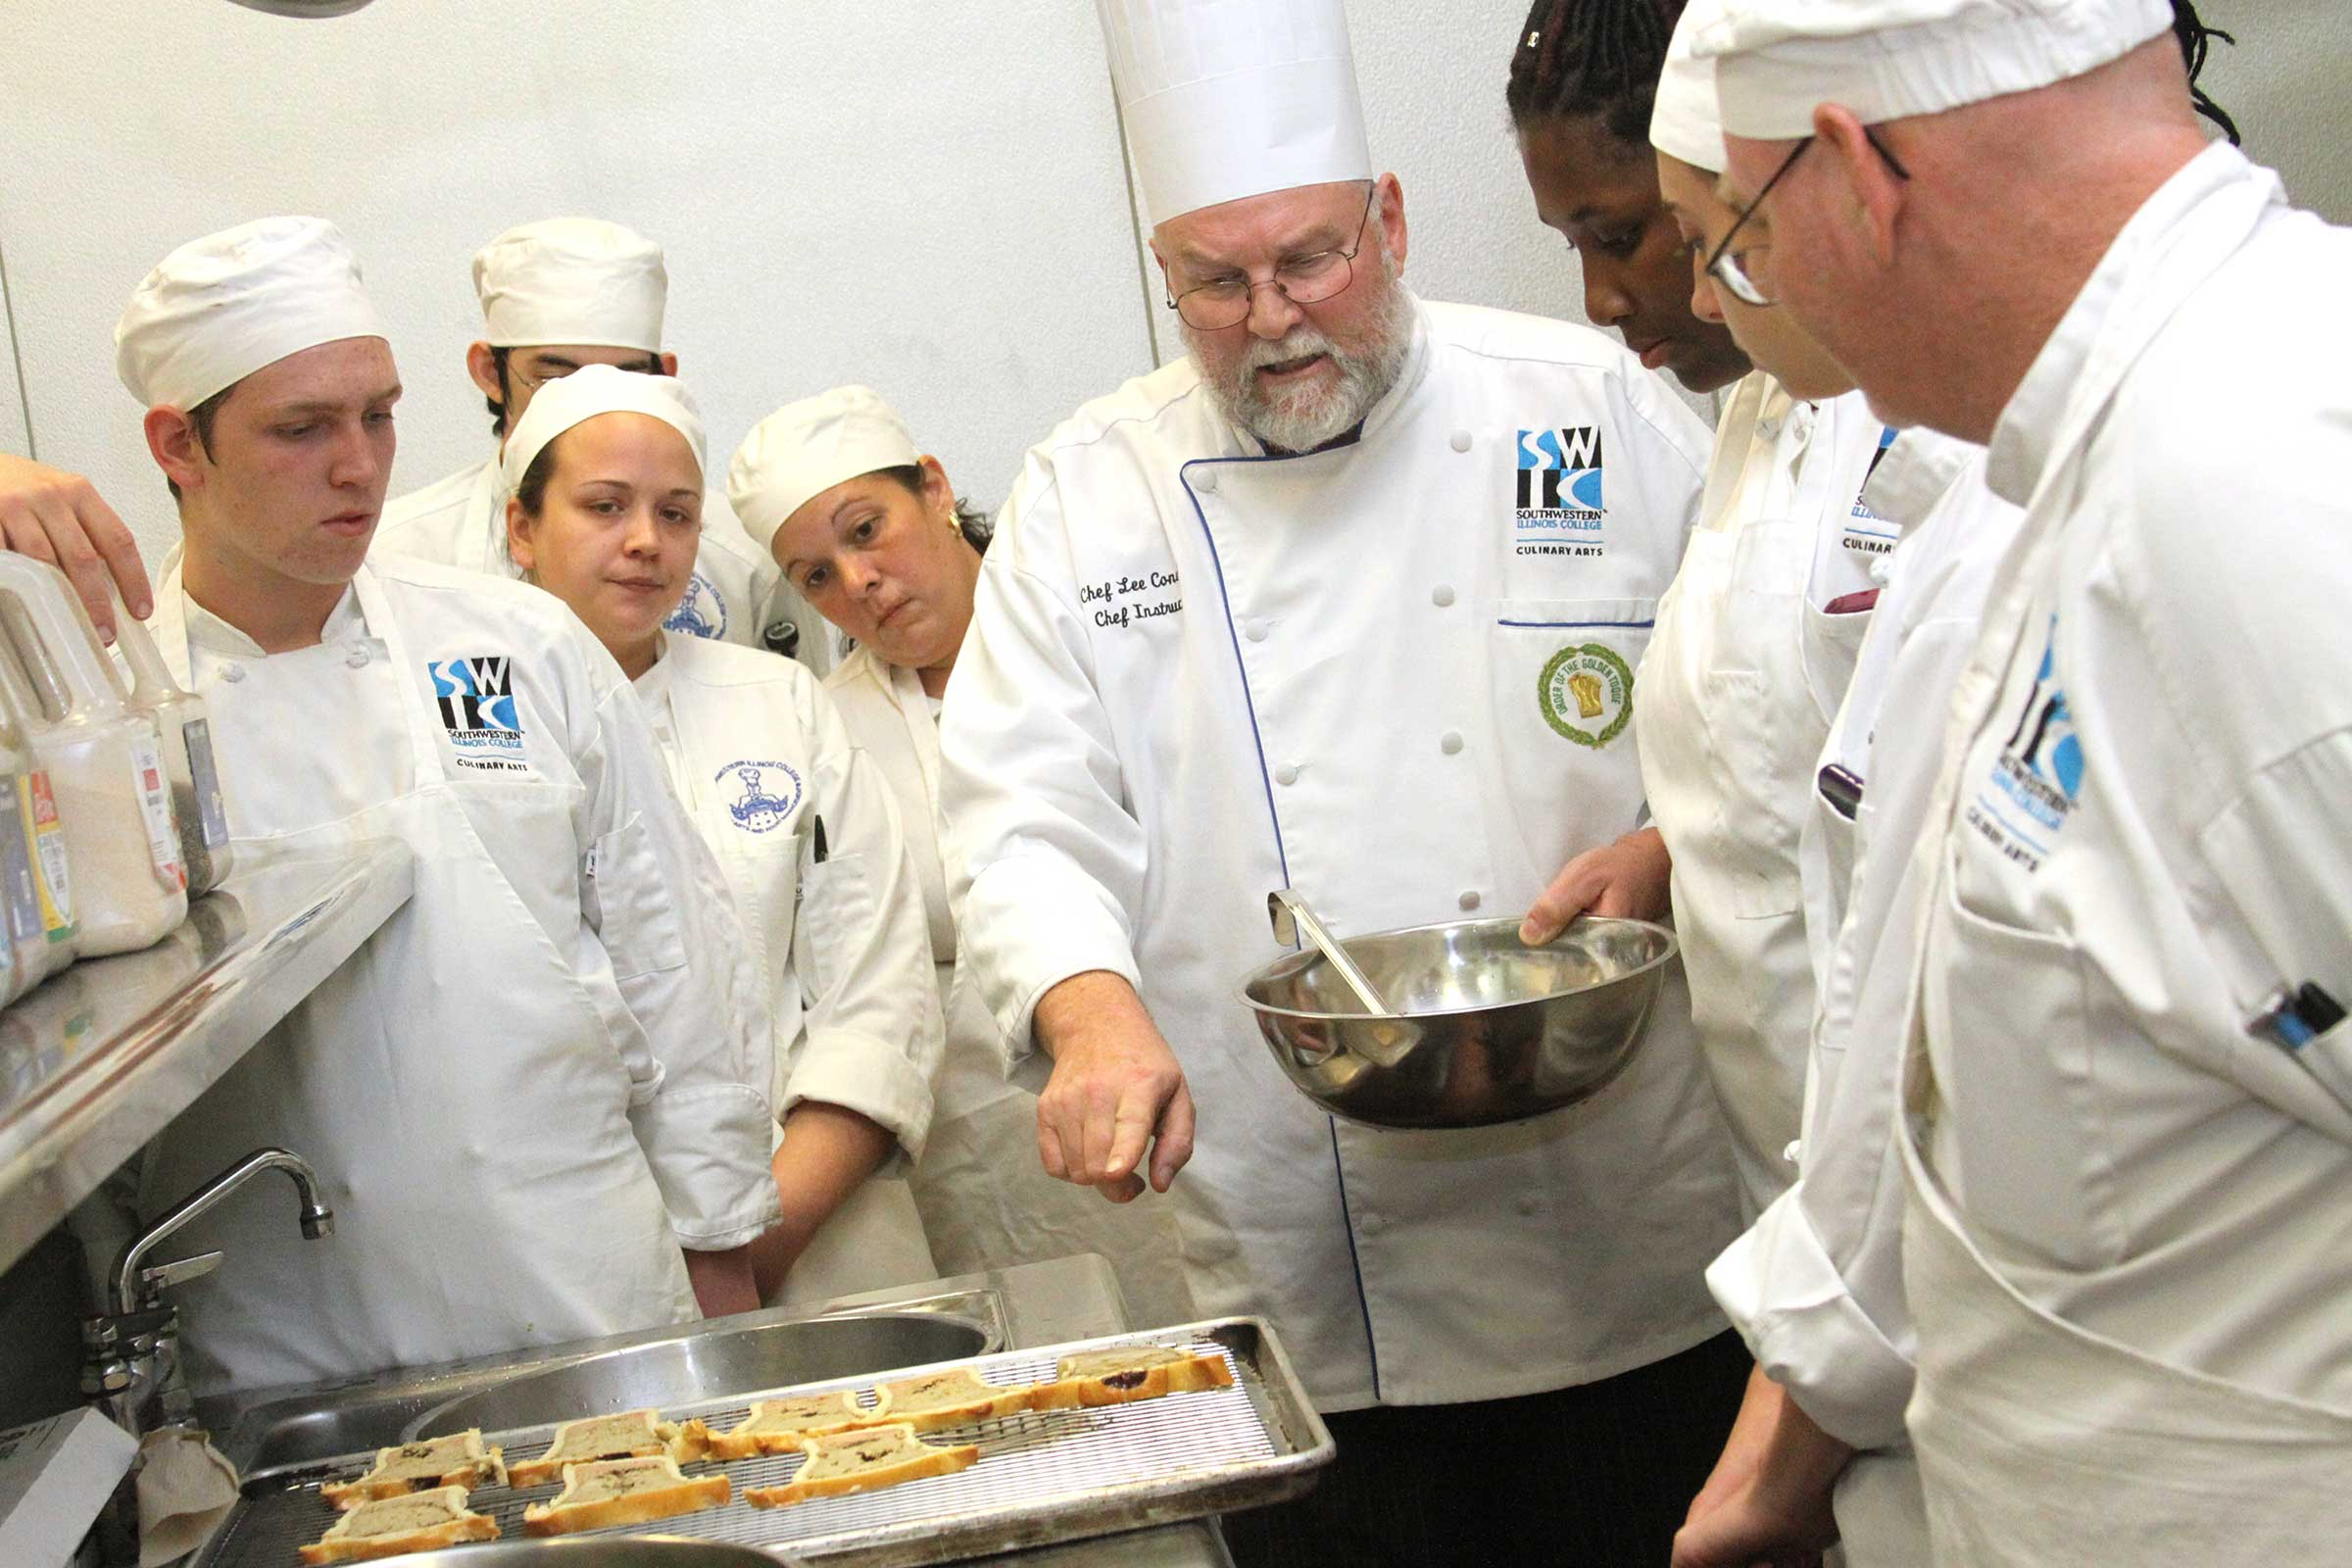 Southwestern Illinois College culinary students